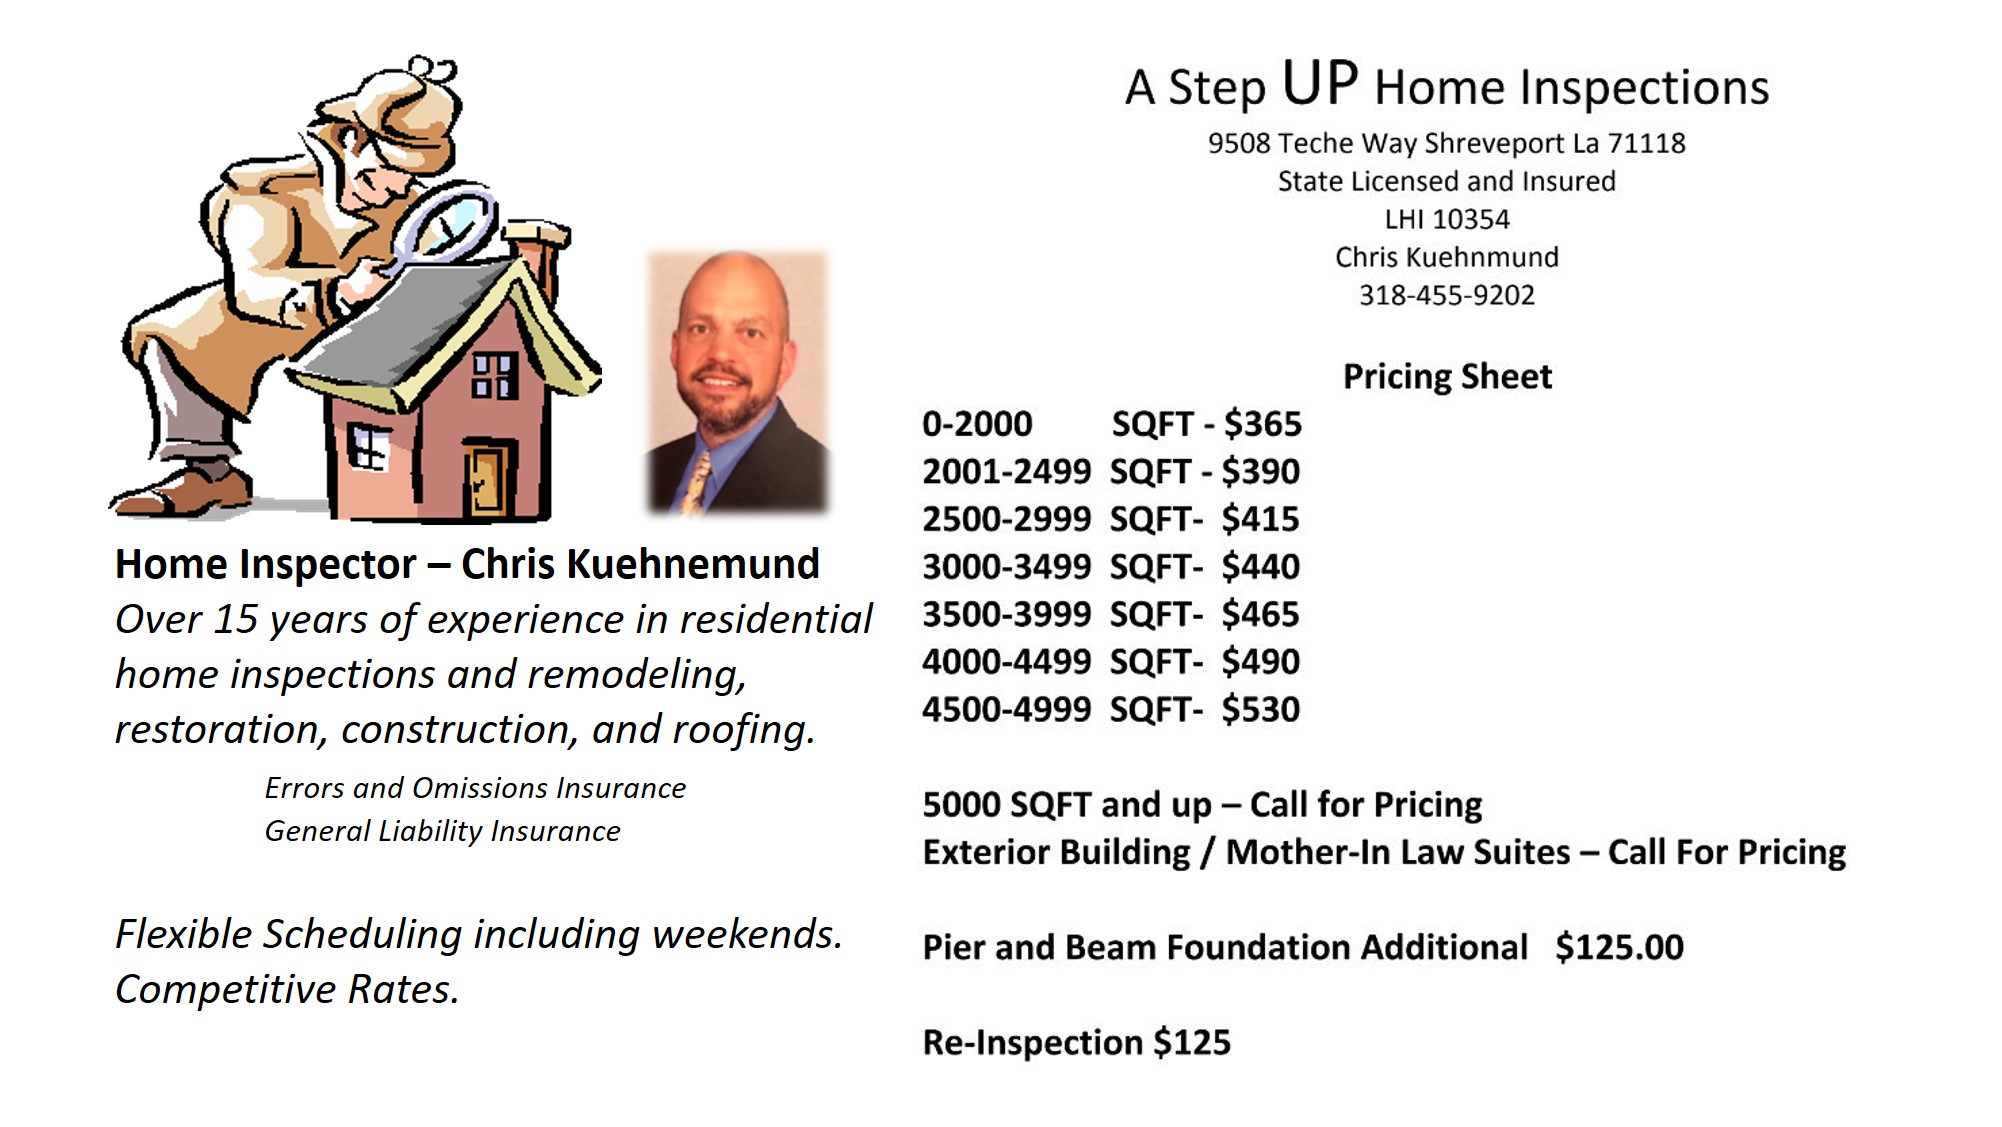 A Step Up Home Inspections